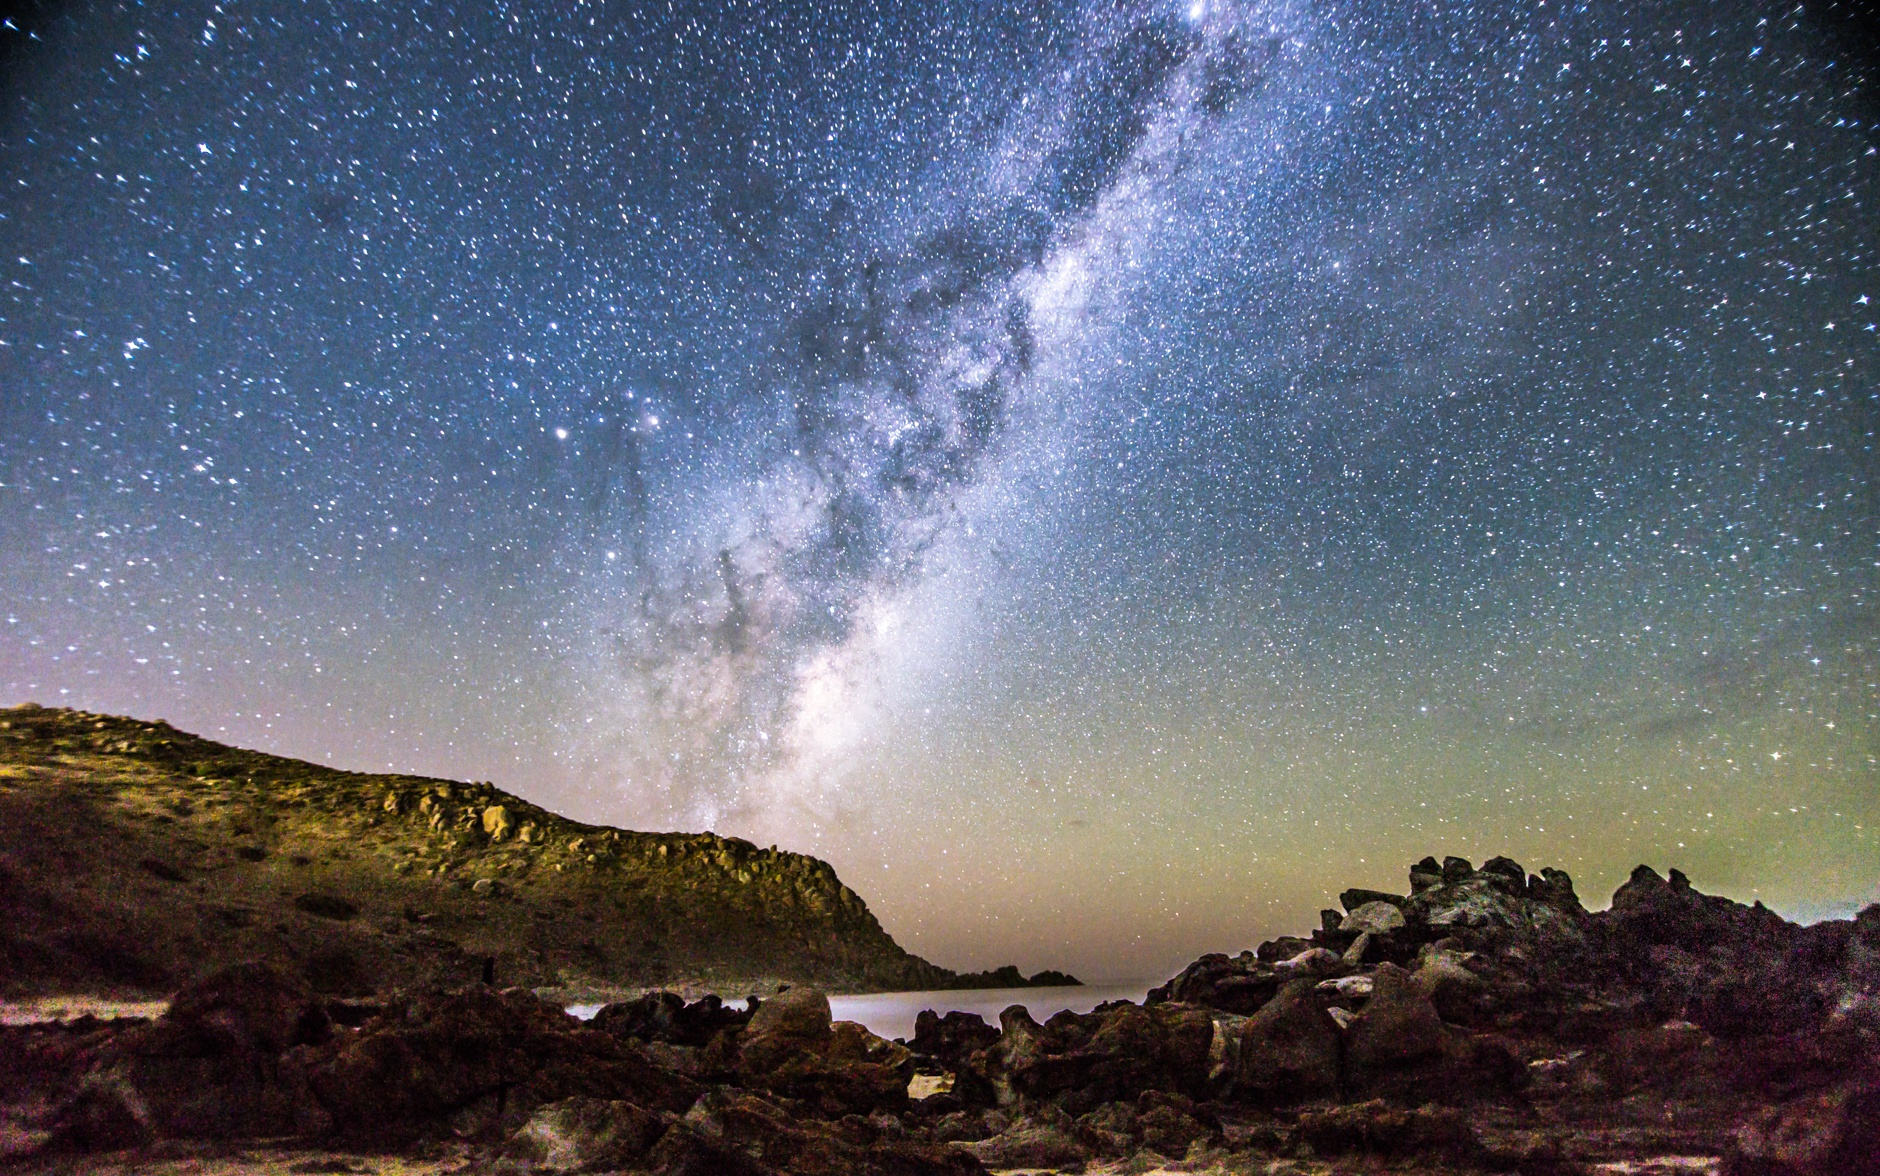 Milky way at the Petrel Cove by Nicole Rix